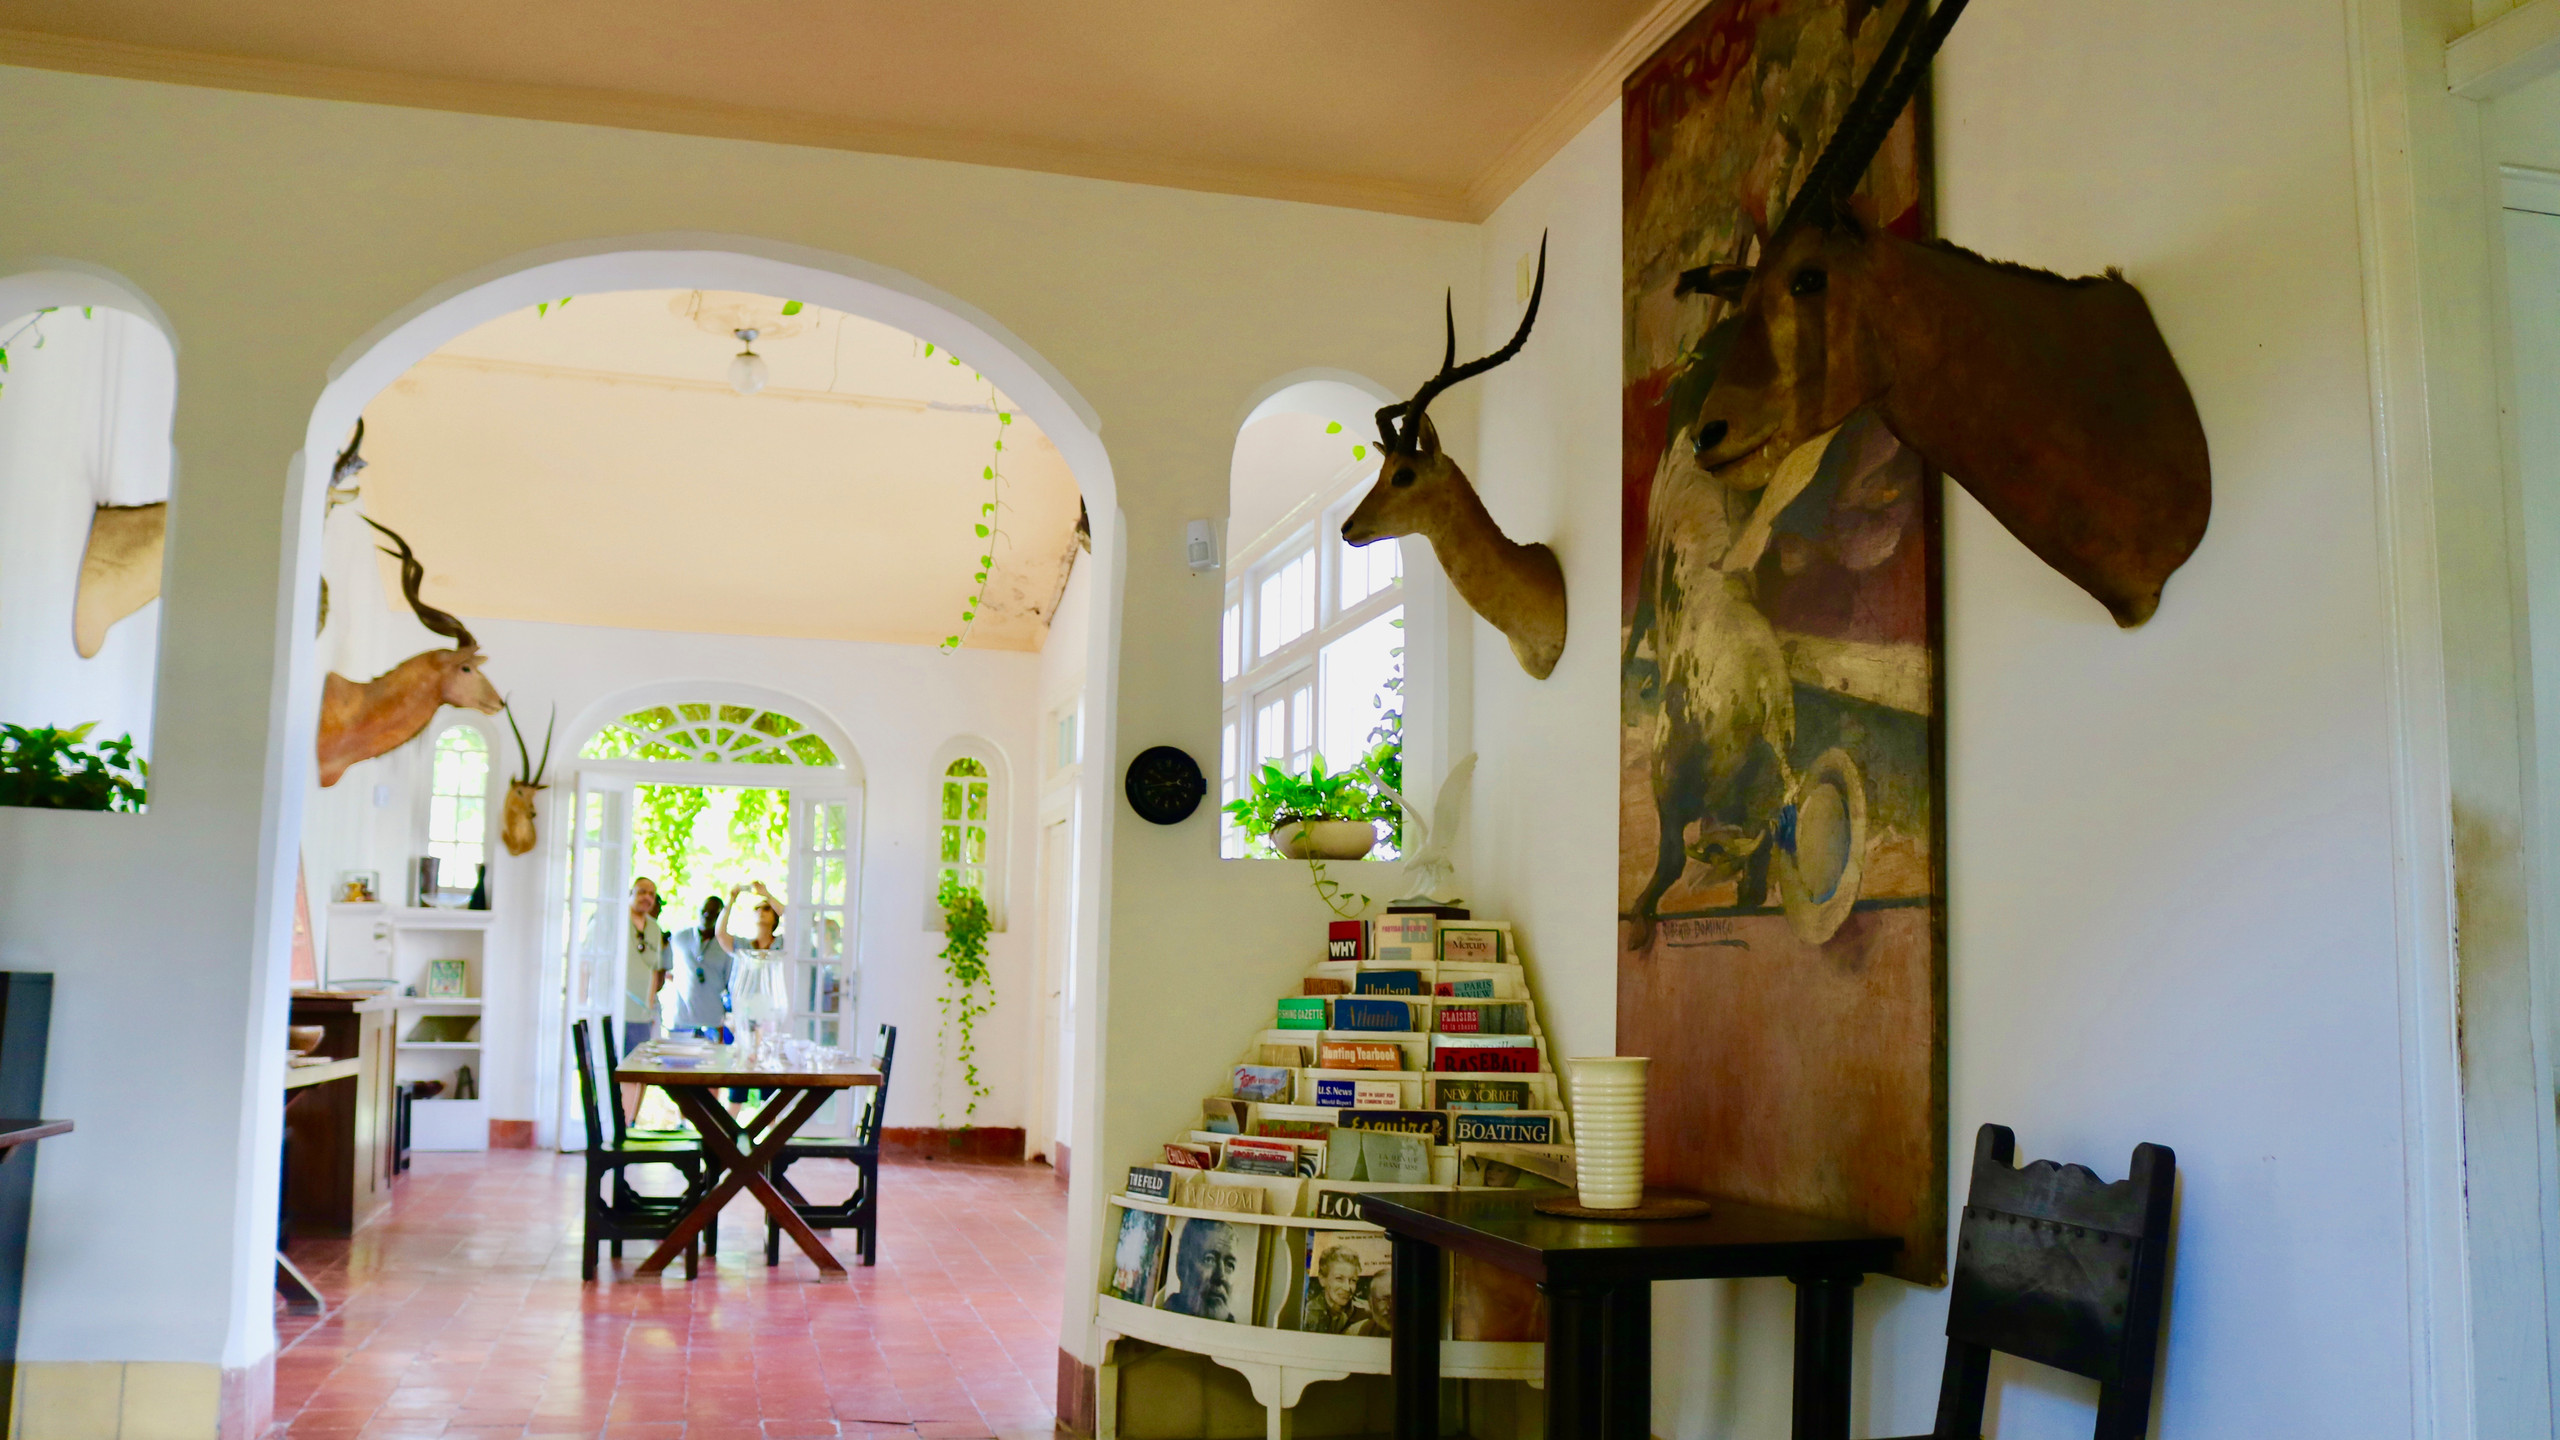 Dining room and walls with antelope heads at Ernest Hemingway's Finca Vigia home.